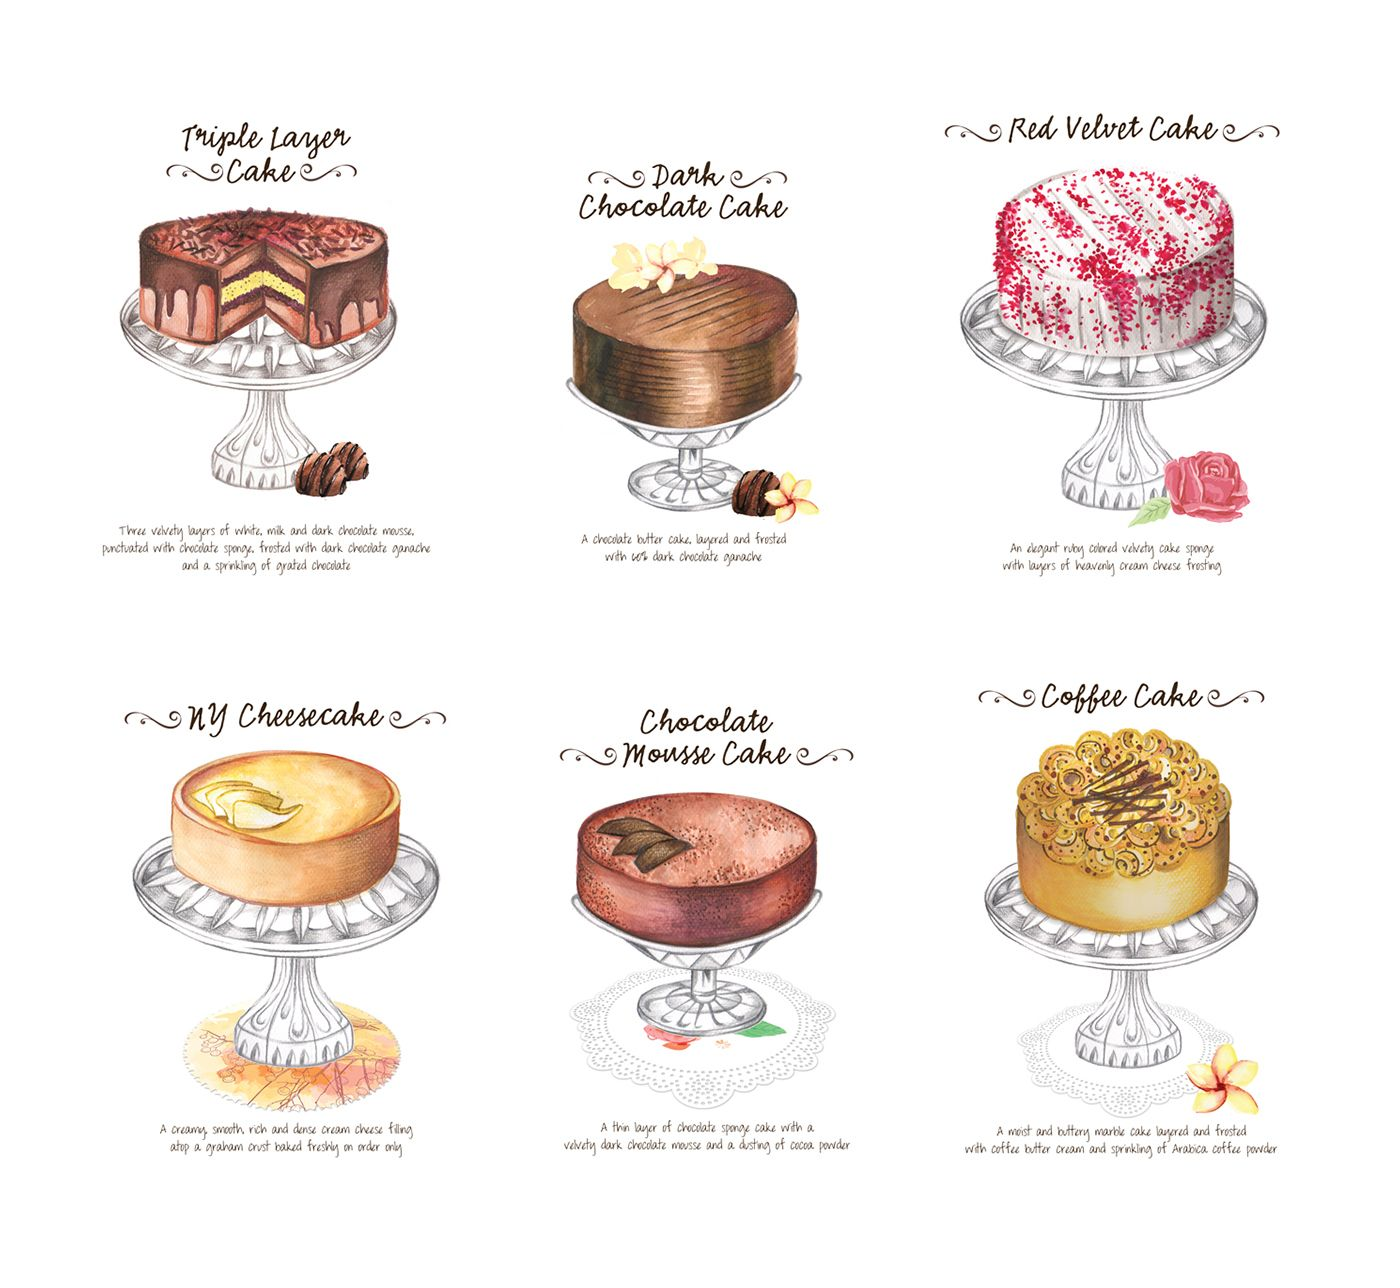 Lals Cake Menu Illustrations On Behance Menu Illustration Desserts Drawing Dessert Illustration